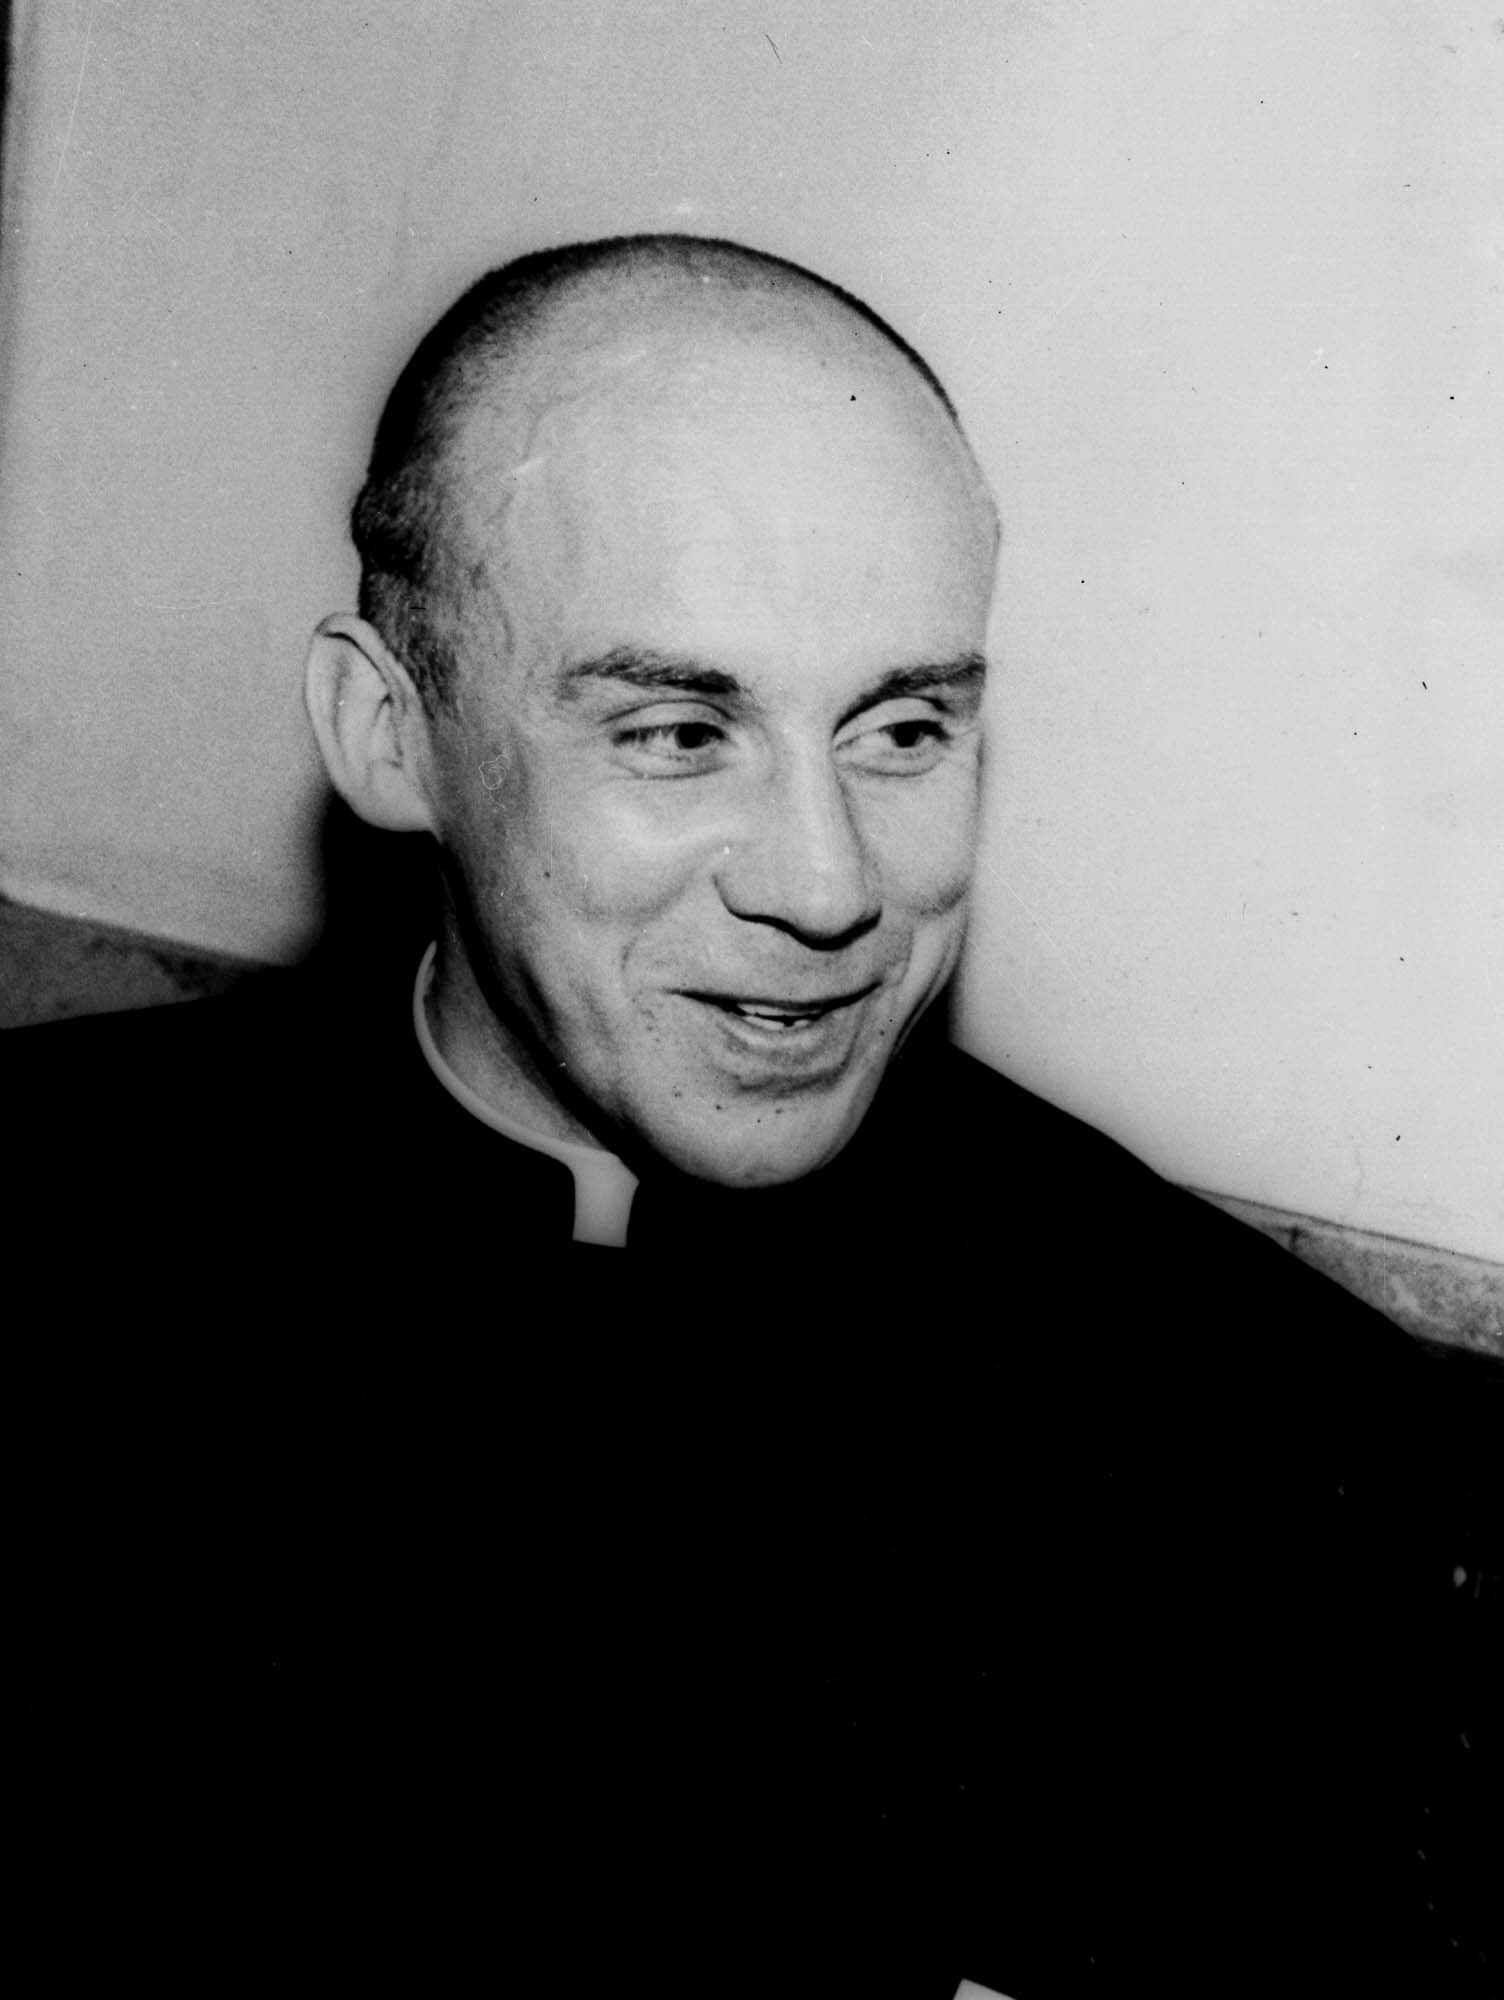 Thomas Merton, a Trappist monk known world-wide as an author and philosopher, is shown in 1951. Merton is best known for his book